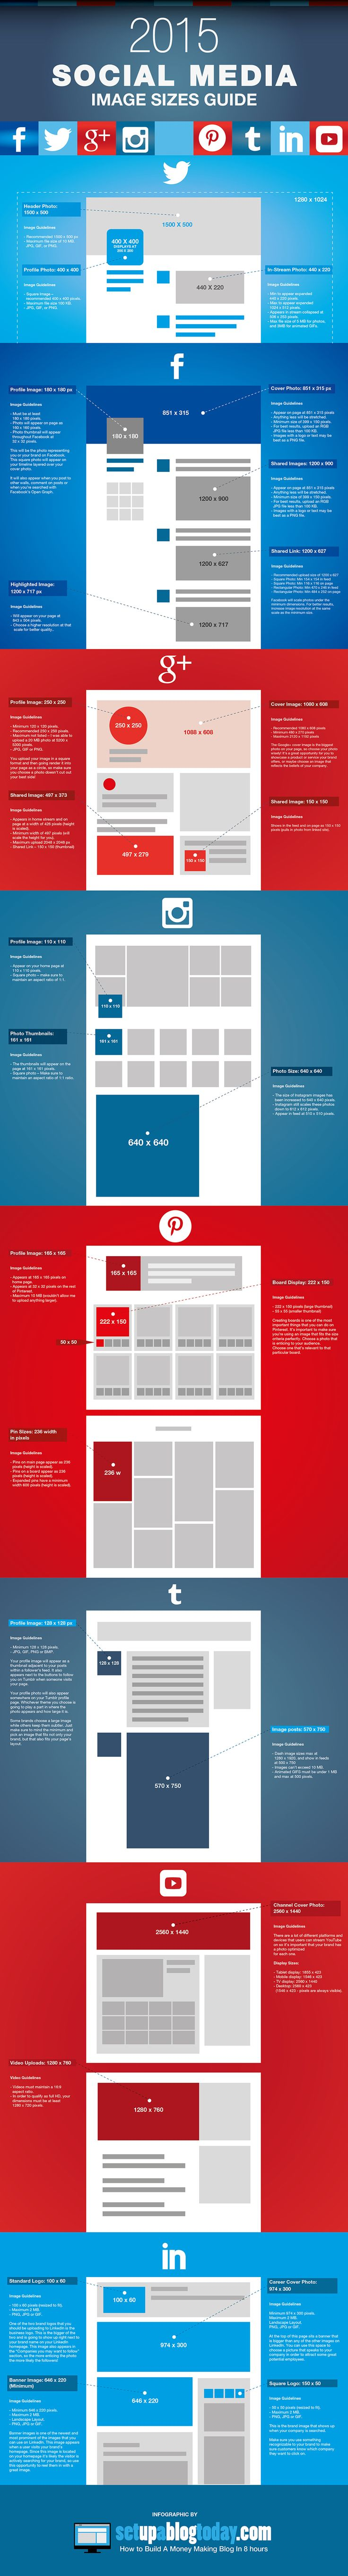 2015 Social Media Image Size Guide. #Photography #SocialMedia